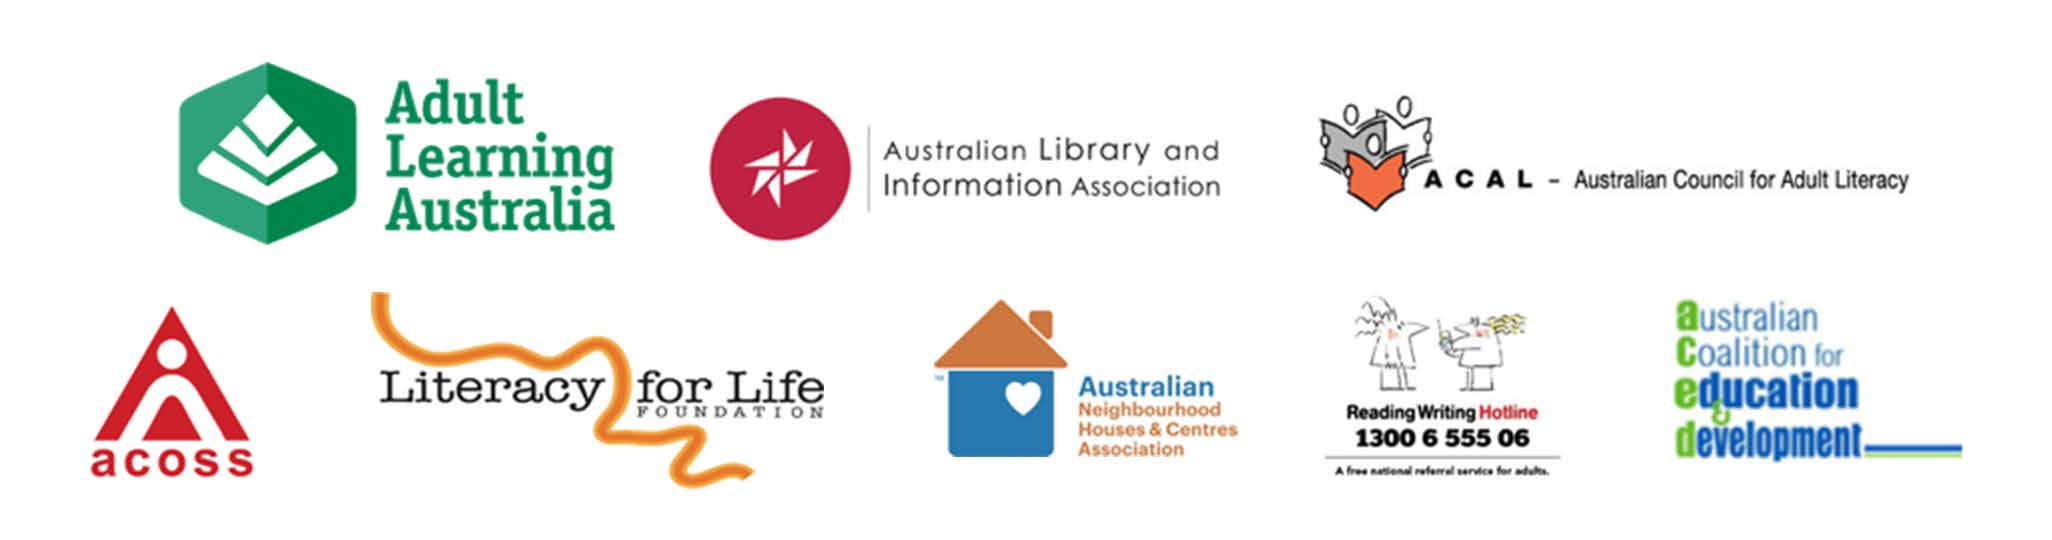 Logos of Adult Learning Australia and Literacy organisations.